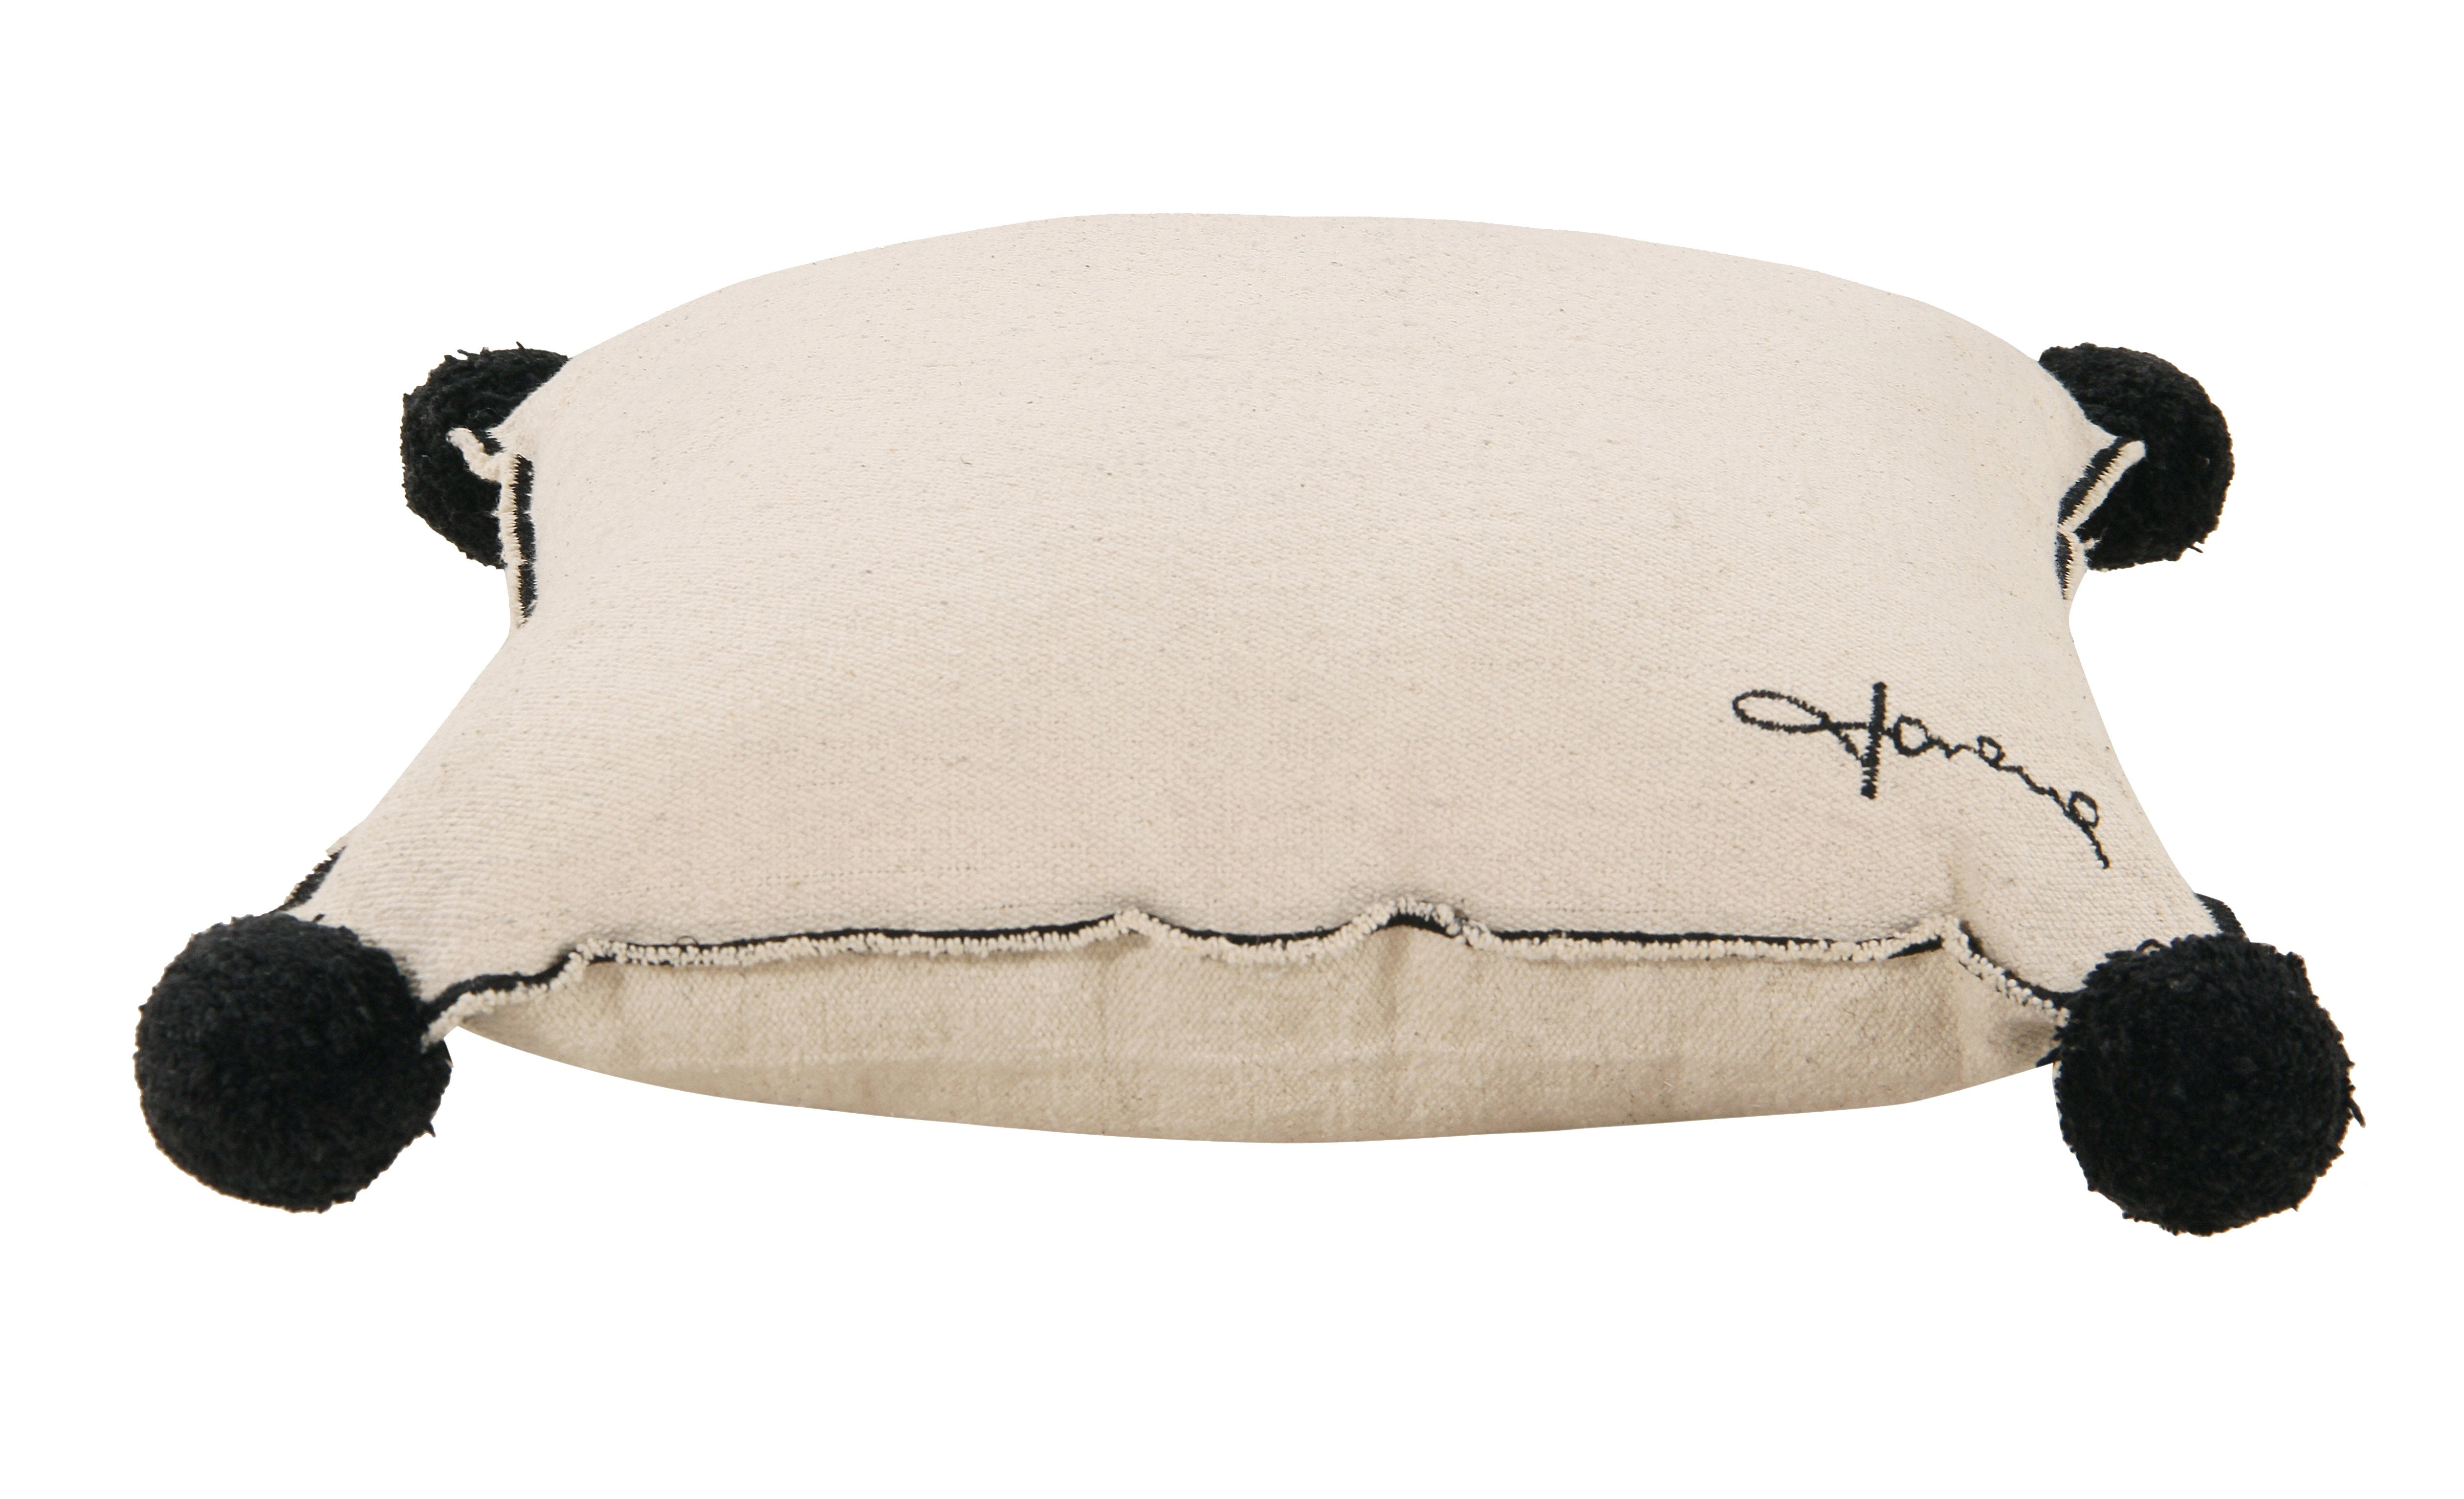 Square Cushion in Beige design by Lorena Canals